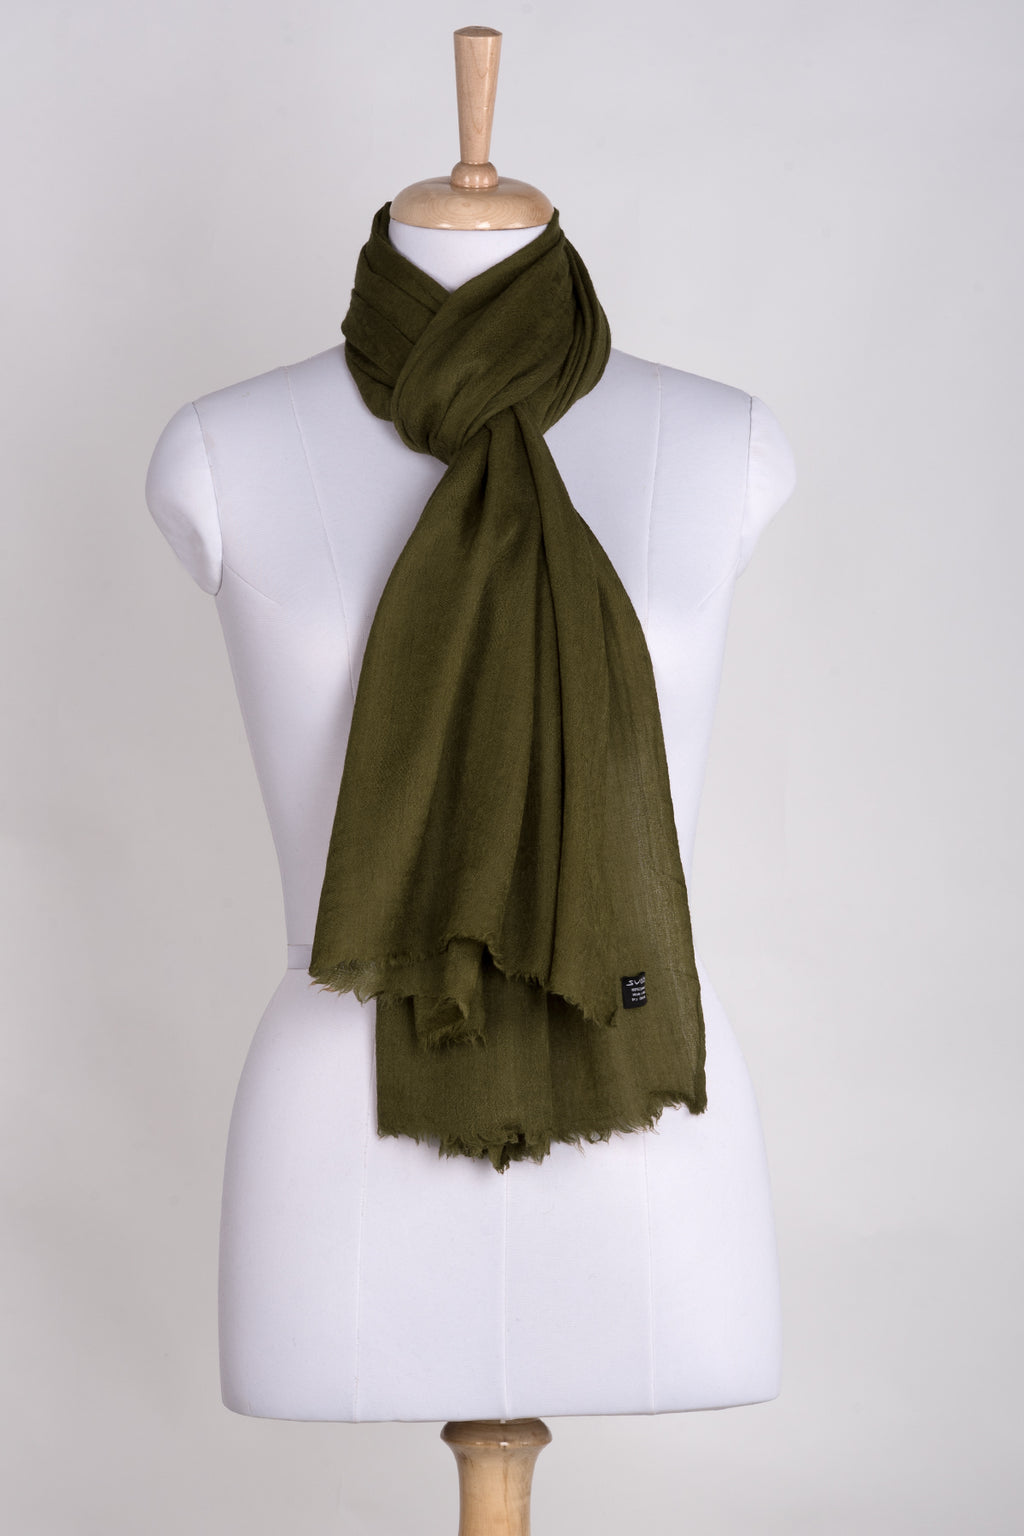 Paisley Jacquard Weave Cashmere Wool Scarf - Olive